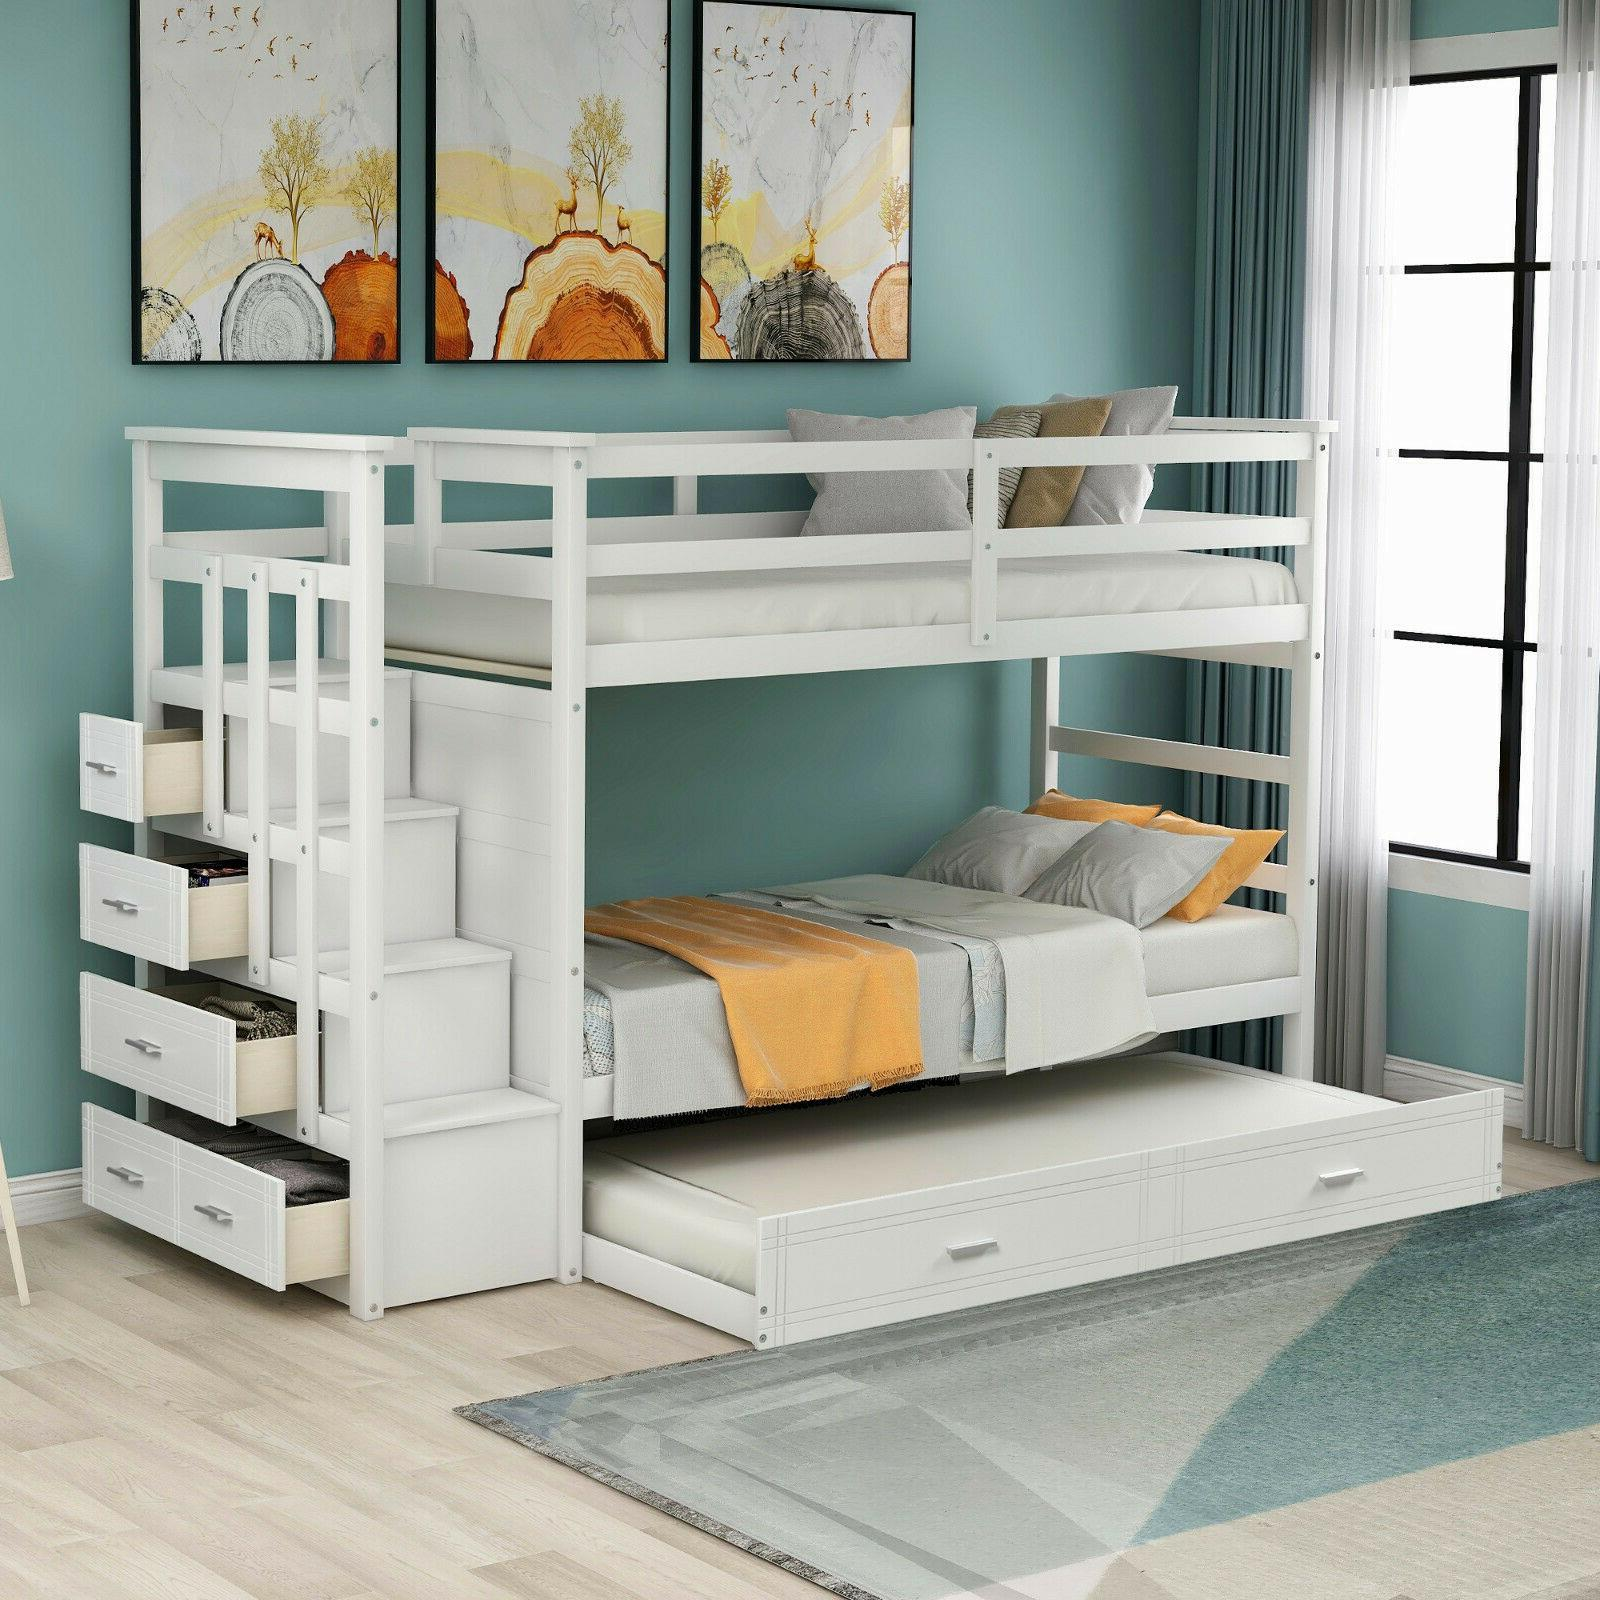 Solid Bunk Bed, Hardwood Twin Over Bunk and